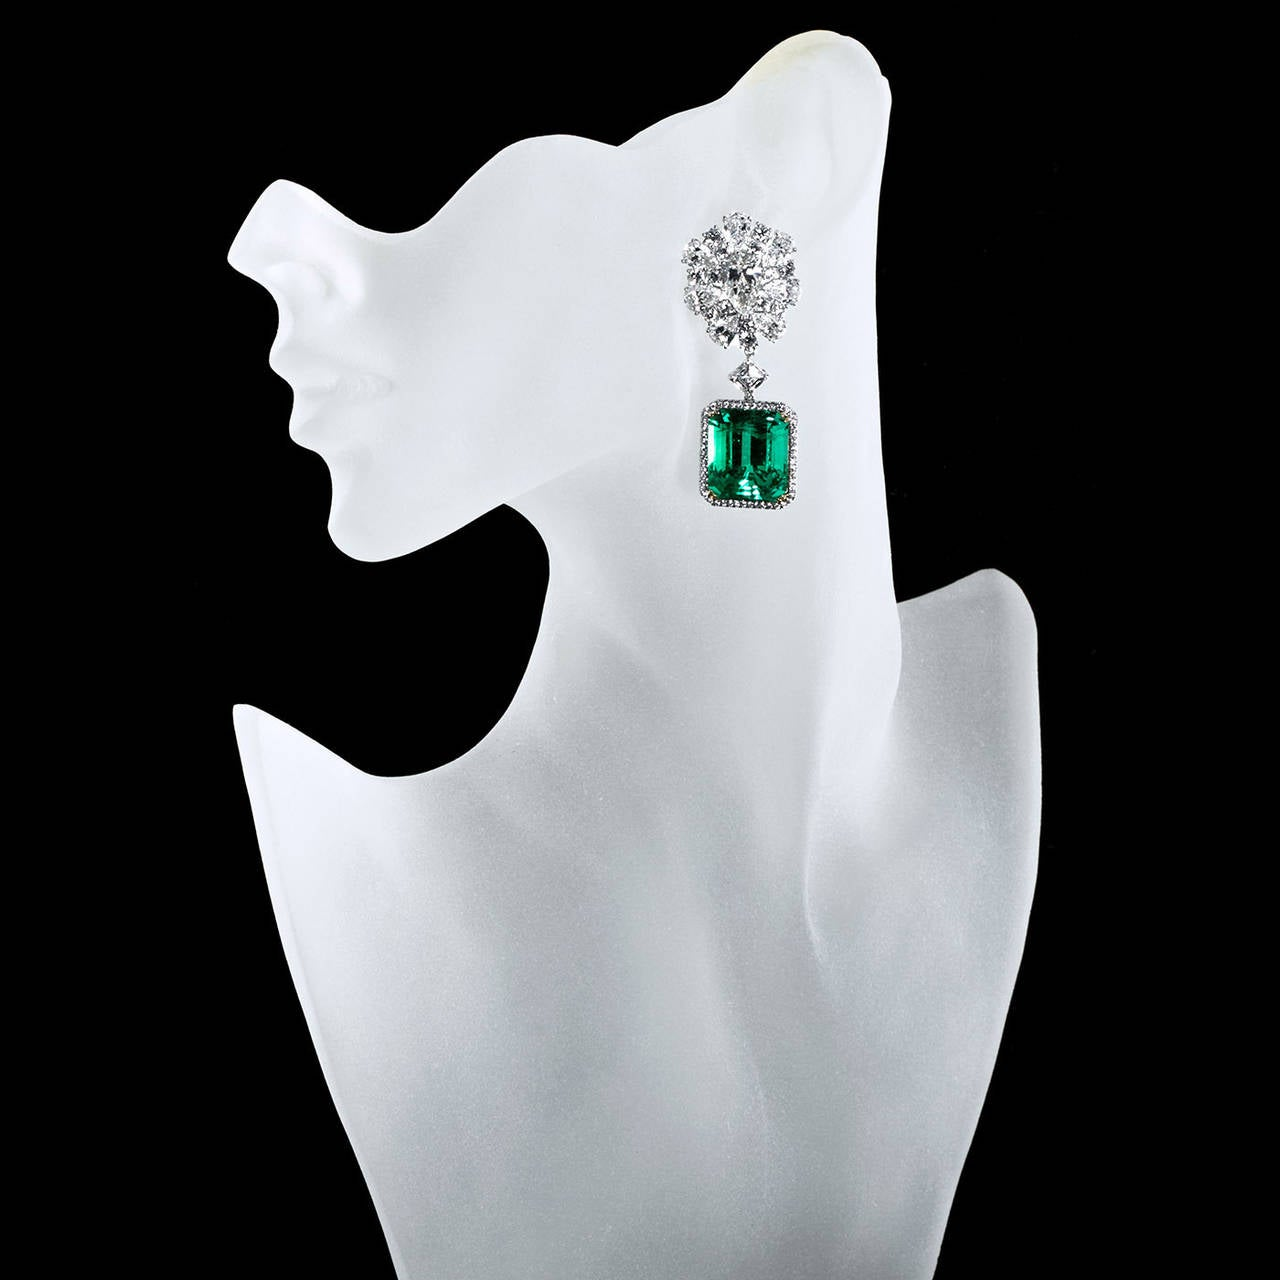 An exquisite pair of diamond and emerald earrings. Earring tops are formed of a cluster of two large pear shape diamonds in the center with additional pear and round brilliant cut diamonds.  The pair of 45 carat total natural Colombian emerald